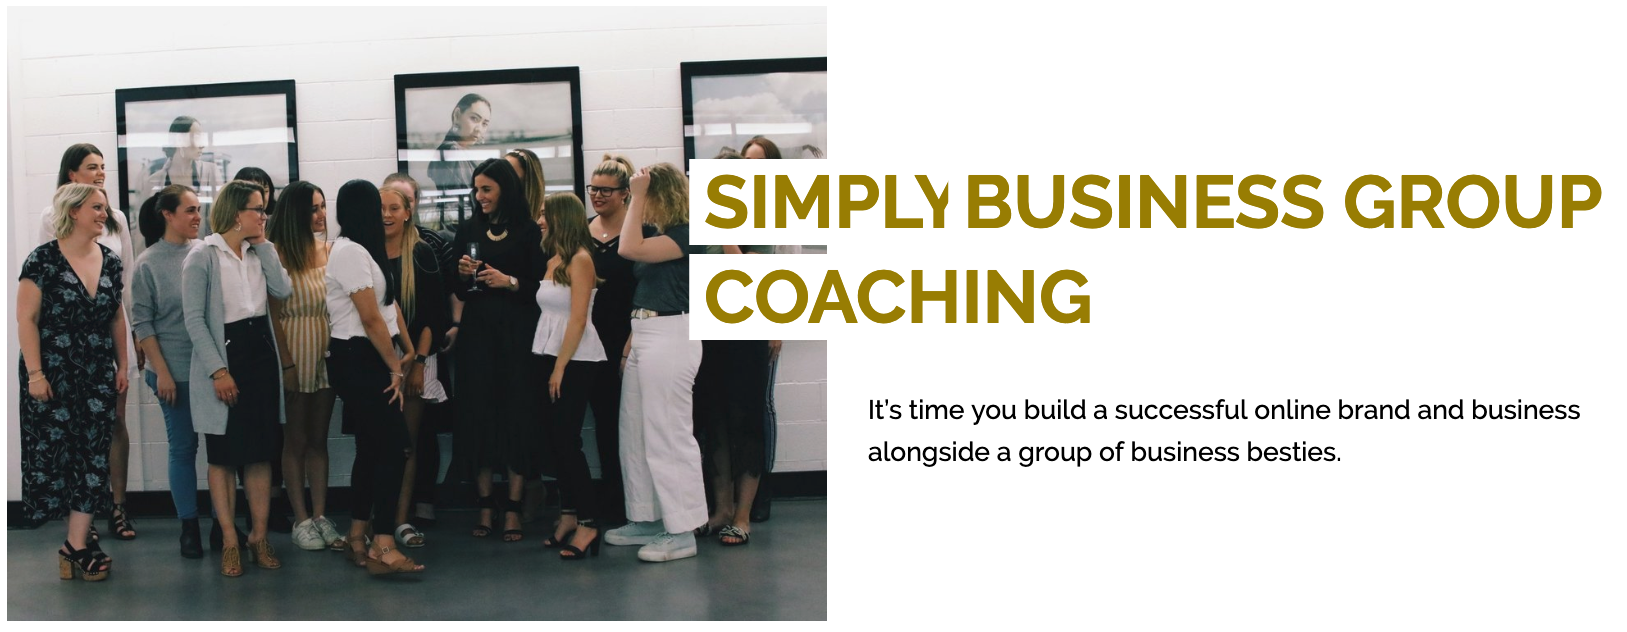 simply business group coaching